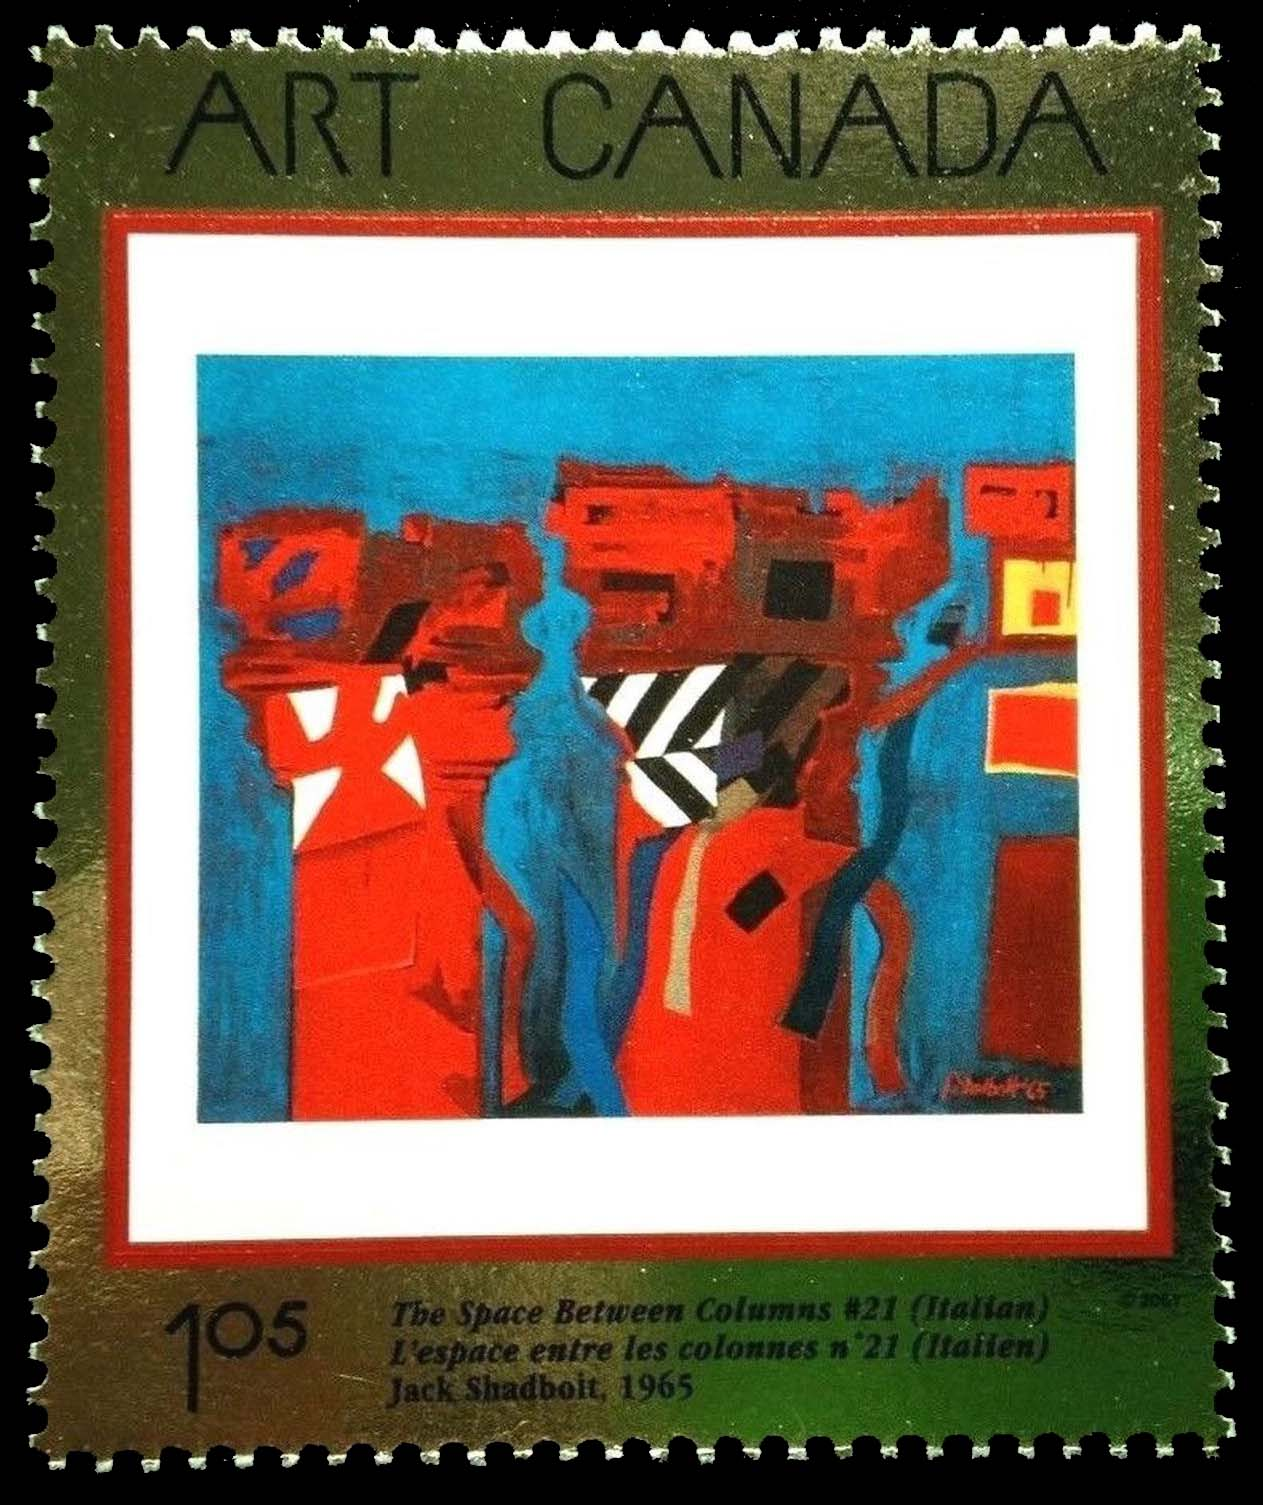 The Space Between Columns #21 (Italian), 1965, Jack Shadbolt Canada Postage Stamp | Masterpieces of Canadian Art